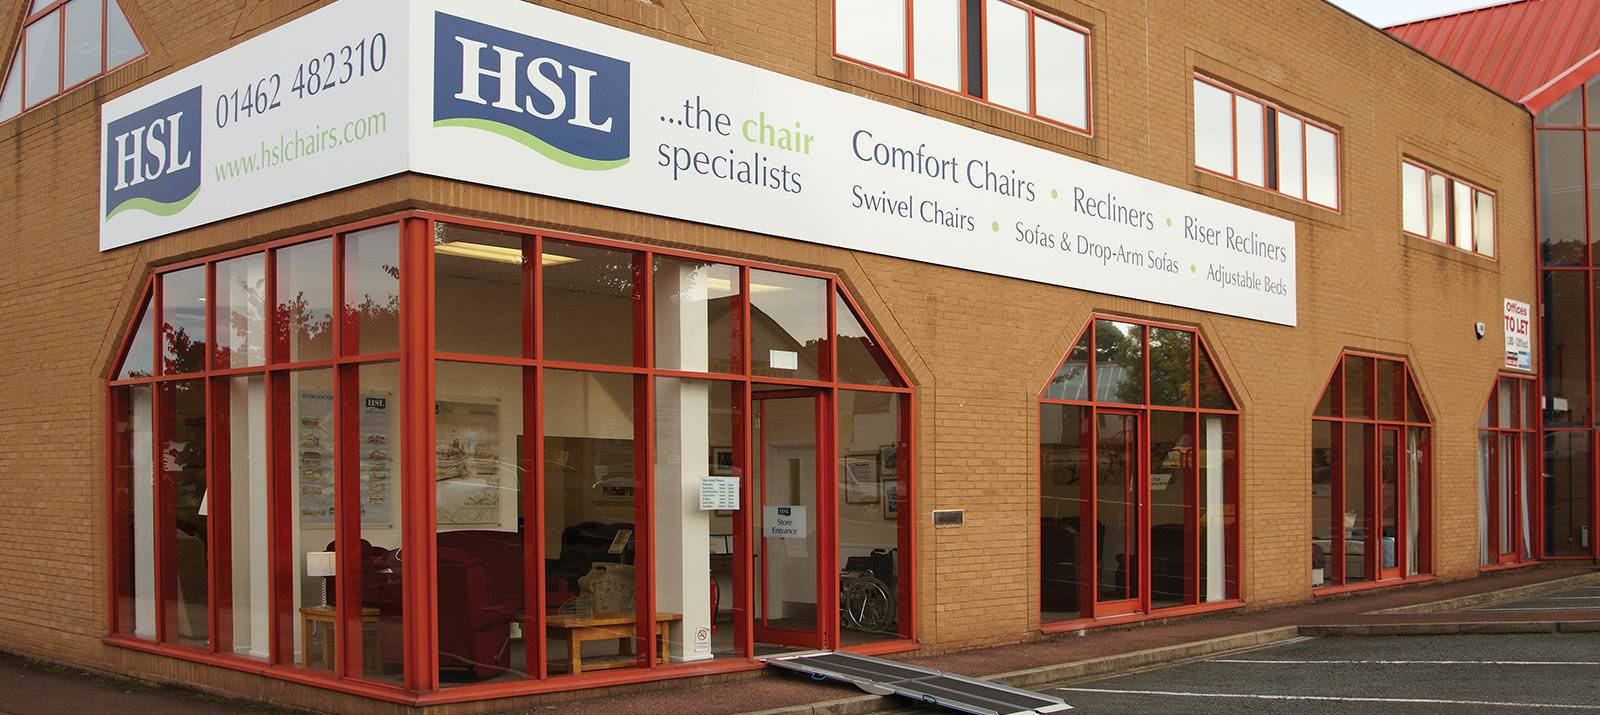 HSL Letchworth Store